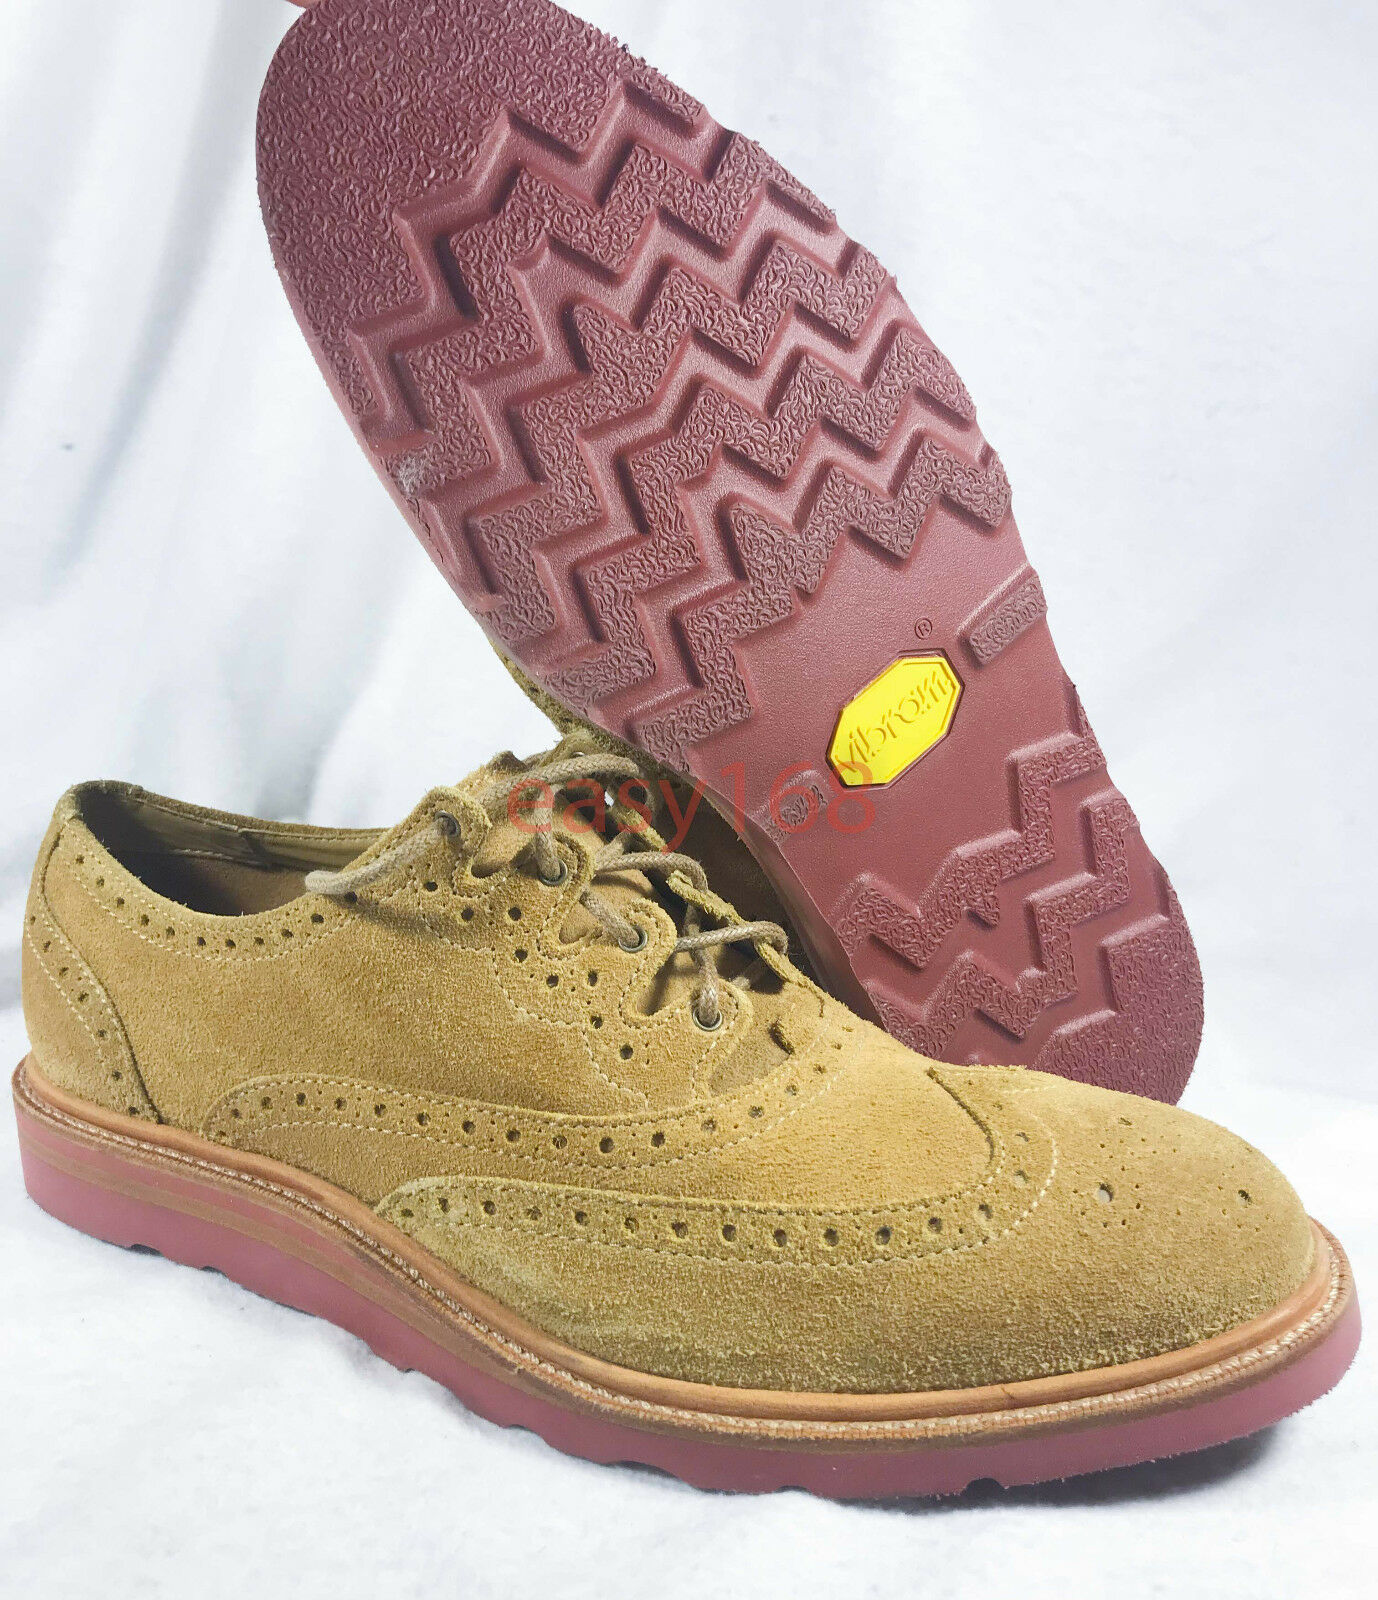 New Cole Haan Wingtip Suede Sz 8.5 Oxford Shoes Vibram C12040 Dress Brown